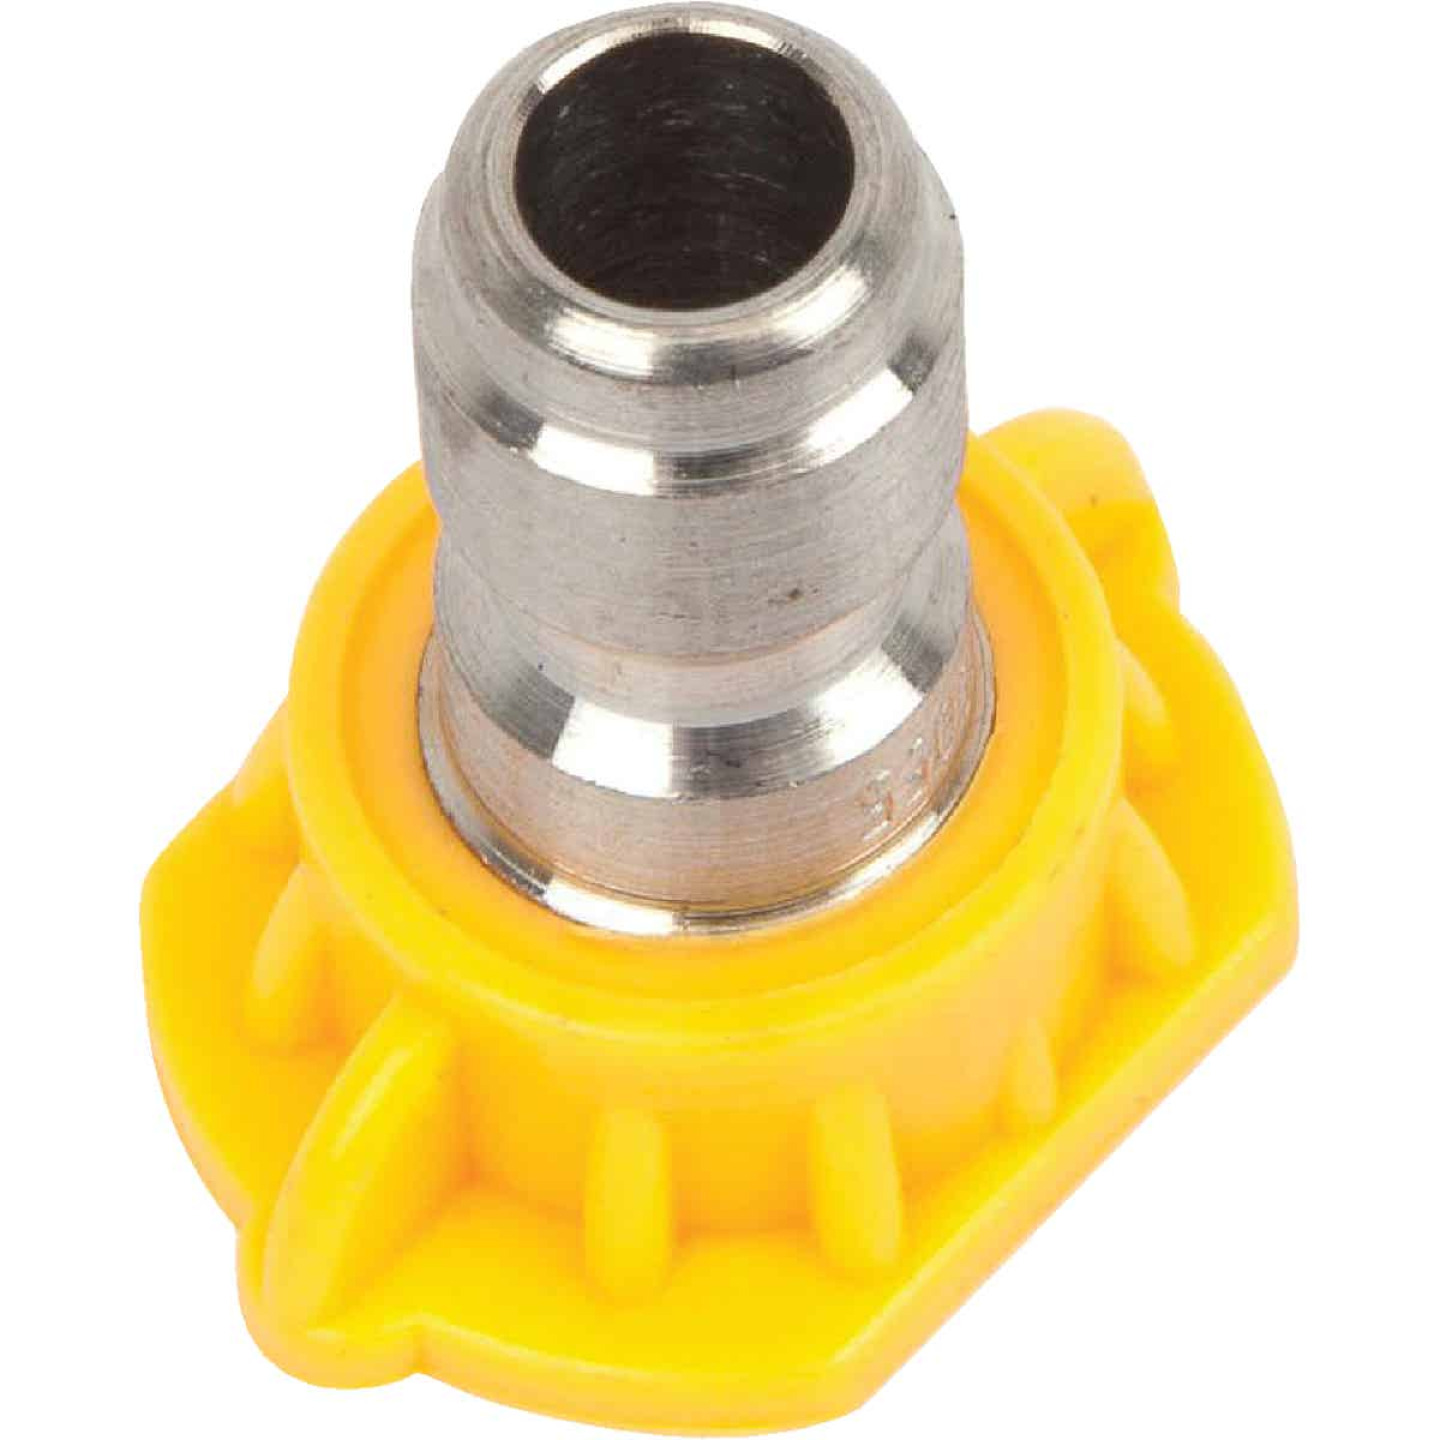 Forney Quick Connect 5.5mm 15 Deg. Yellow Pressure Washer Spray Tip Image 3